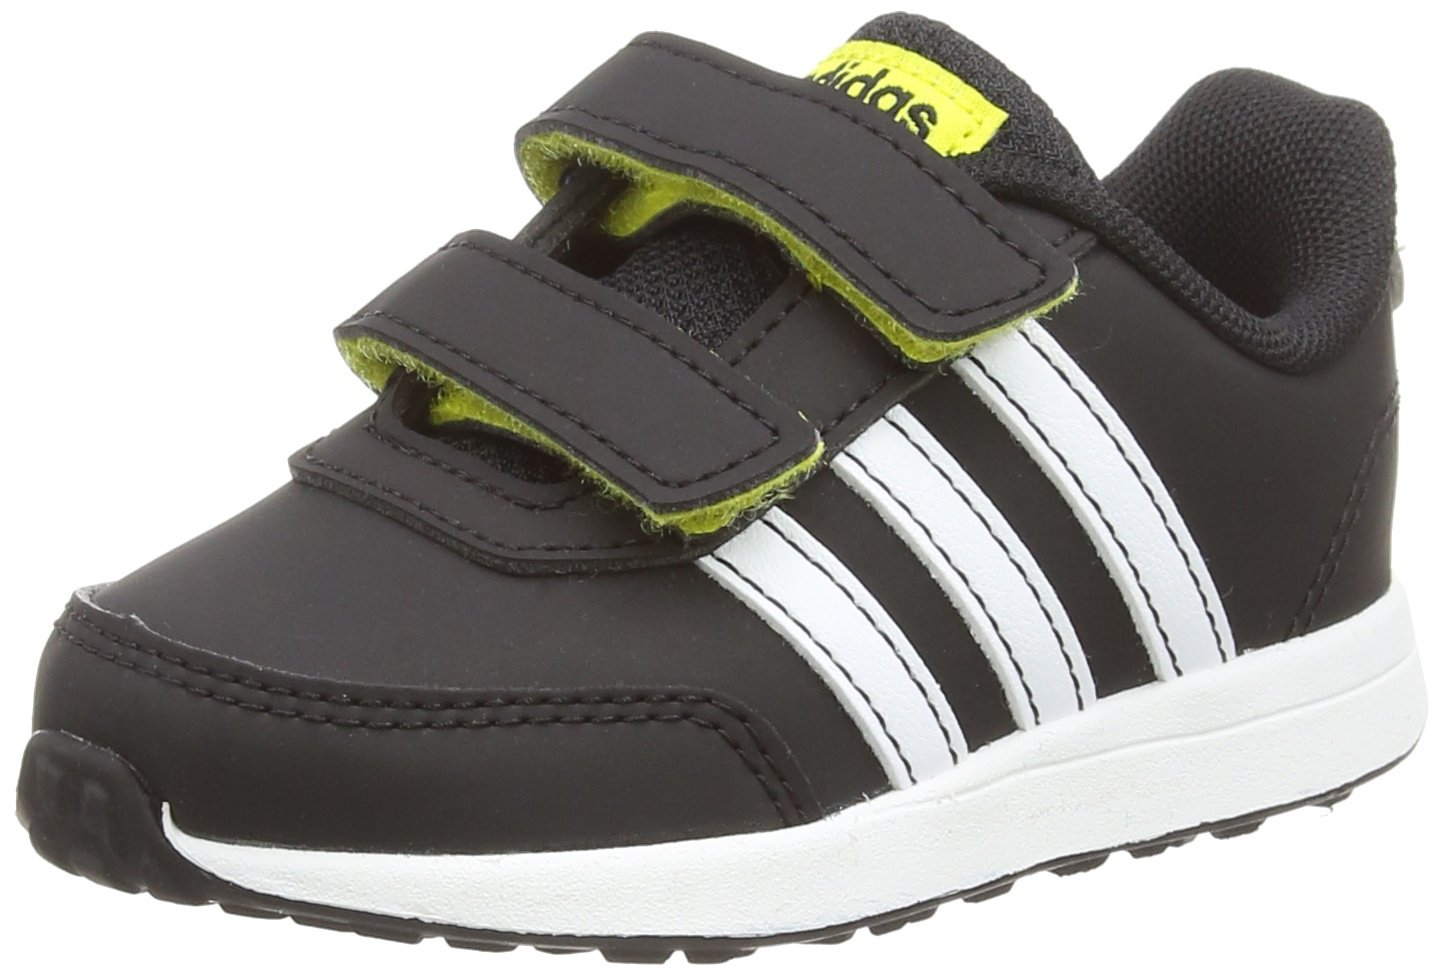 innovative design b11c0 5f71e adidas Vs Switch 2 Cmf Inf, Scarpe Running Unisex - Bimbi 0-24 -  FACESHOPPING